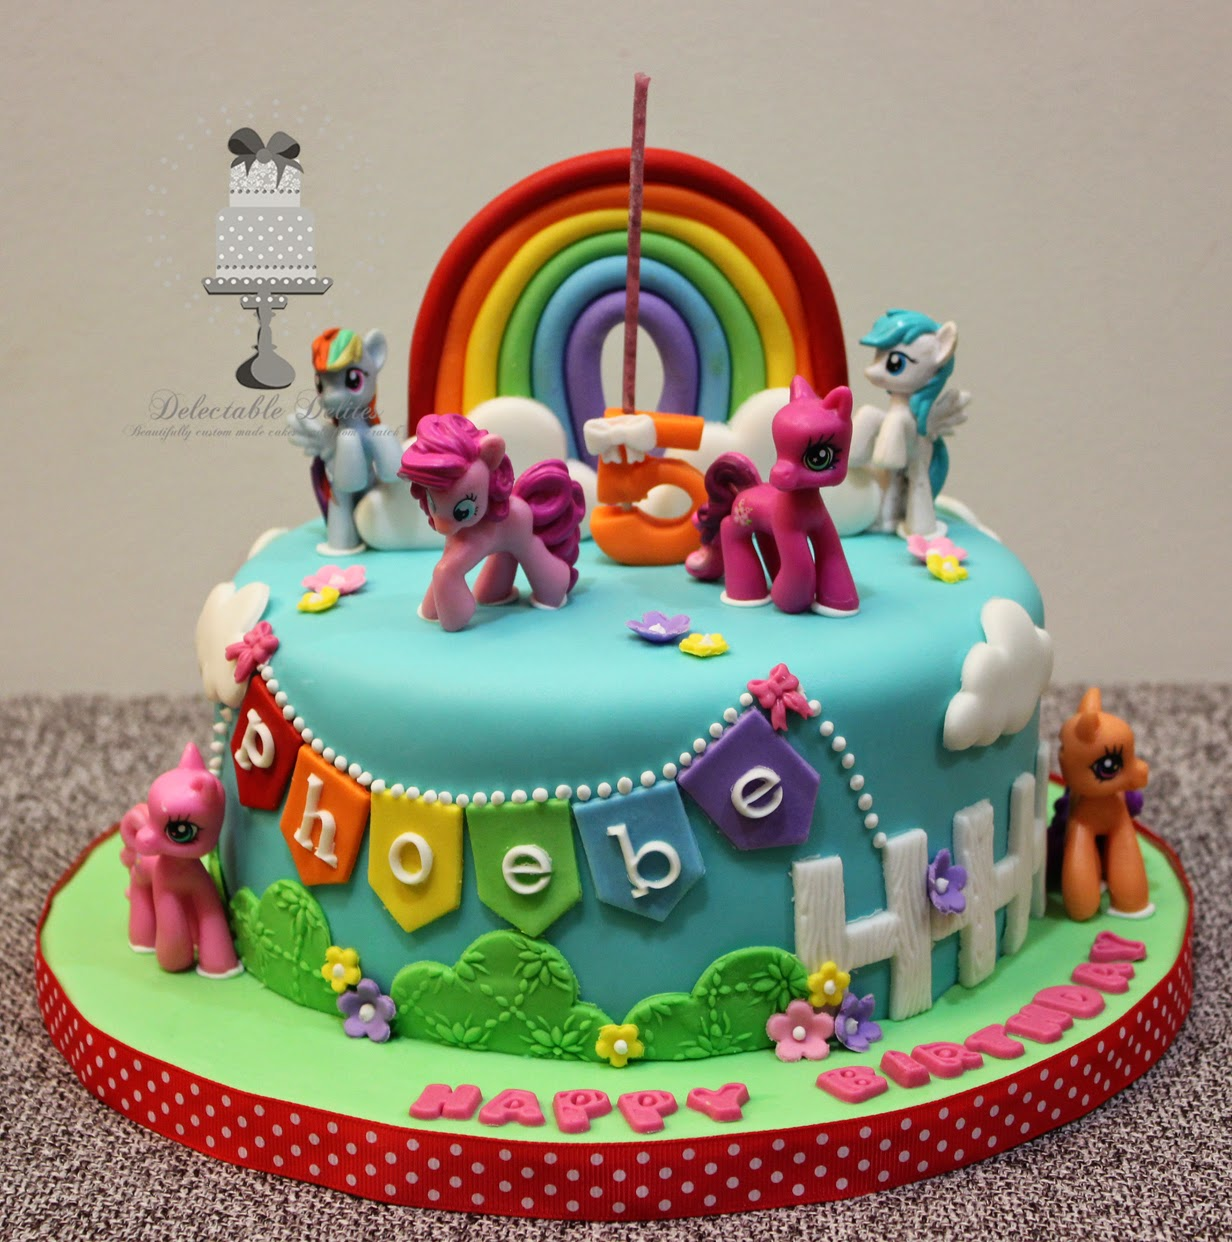 my little pony cadence wedding cake delectable delites april 2014 17675